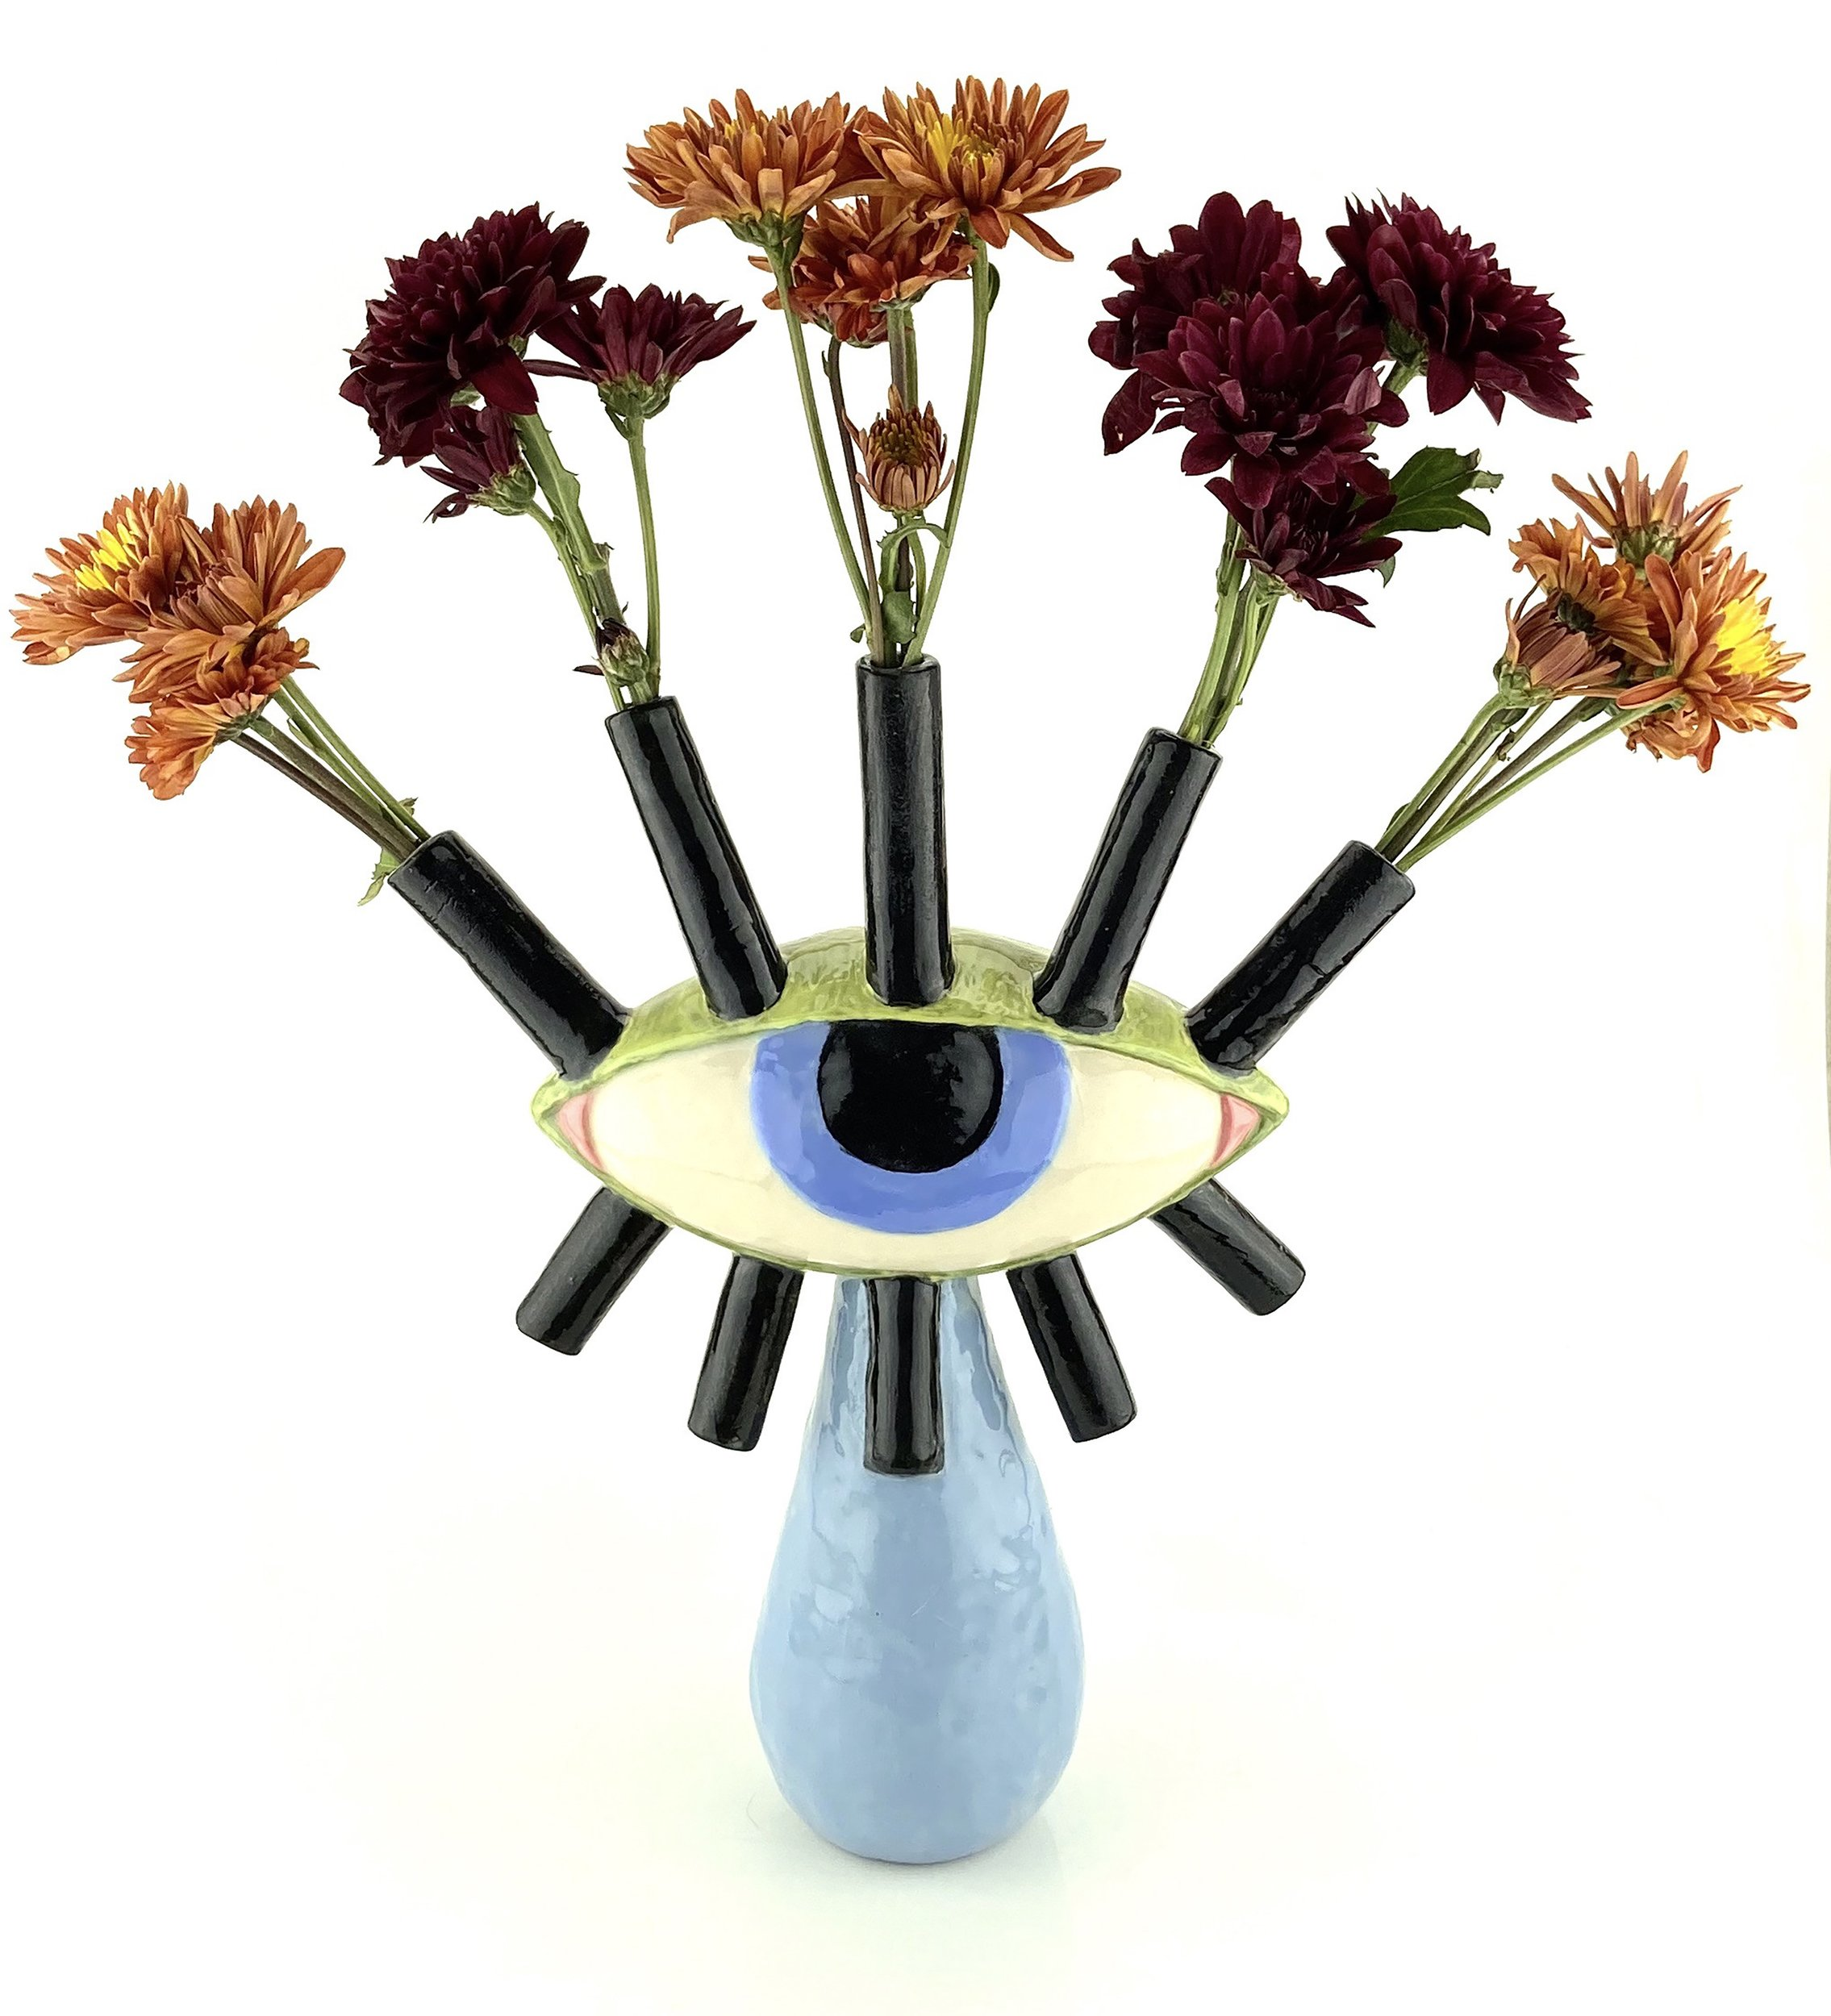 Eyeball Vase by Ashley Bevington.